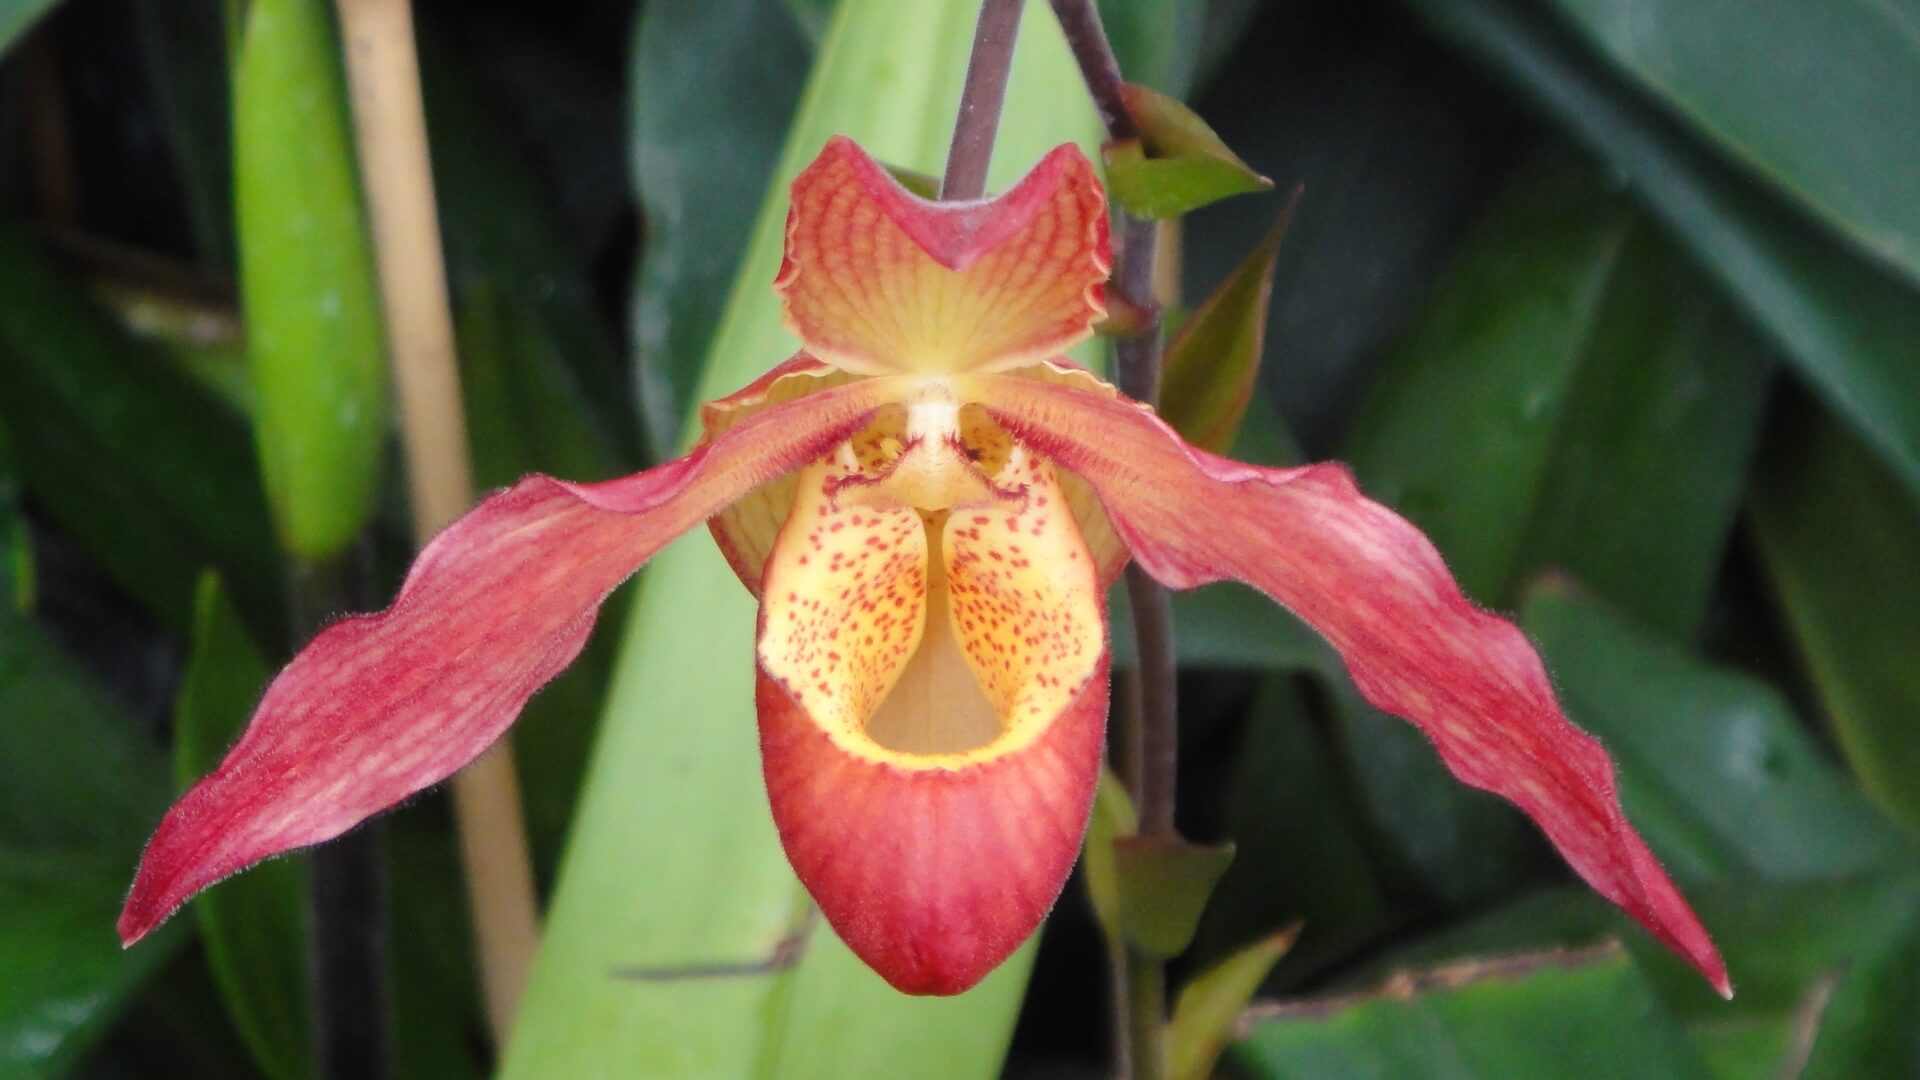 Close-up of the flower of the Slipper orchid. The reddish pink pedals of the flower appear variegated with some yellow. Center of flower is yellow with reddish speckles. The green leaf is in the background.